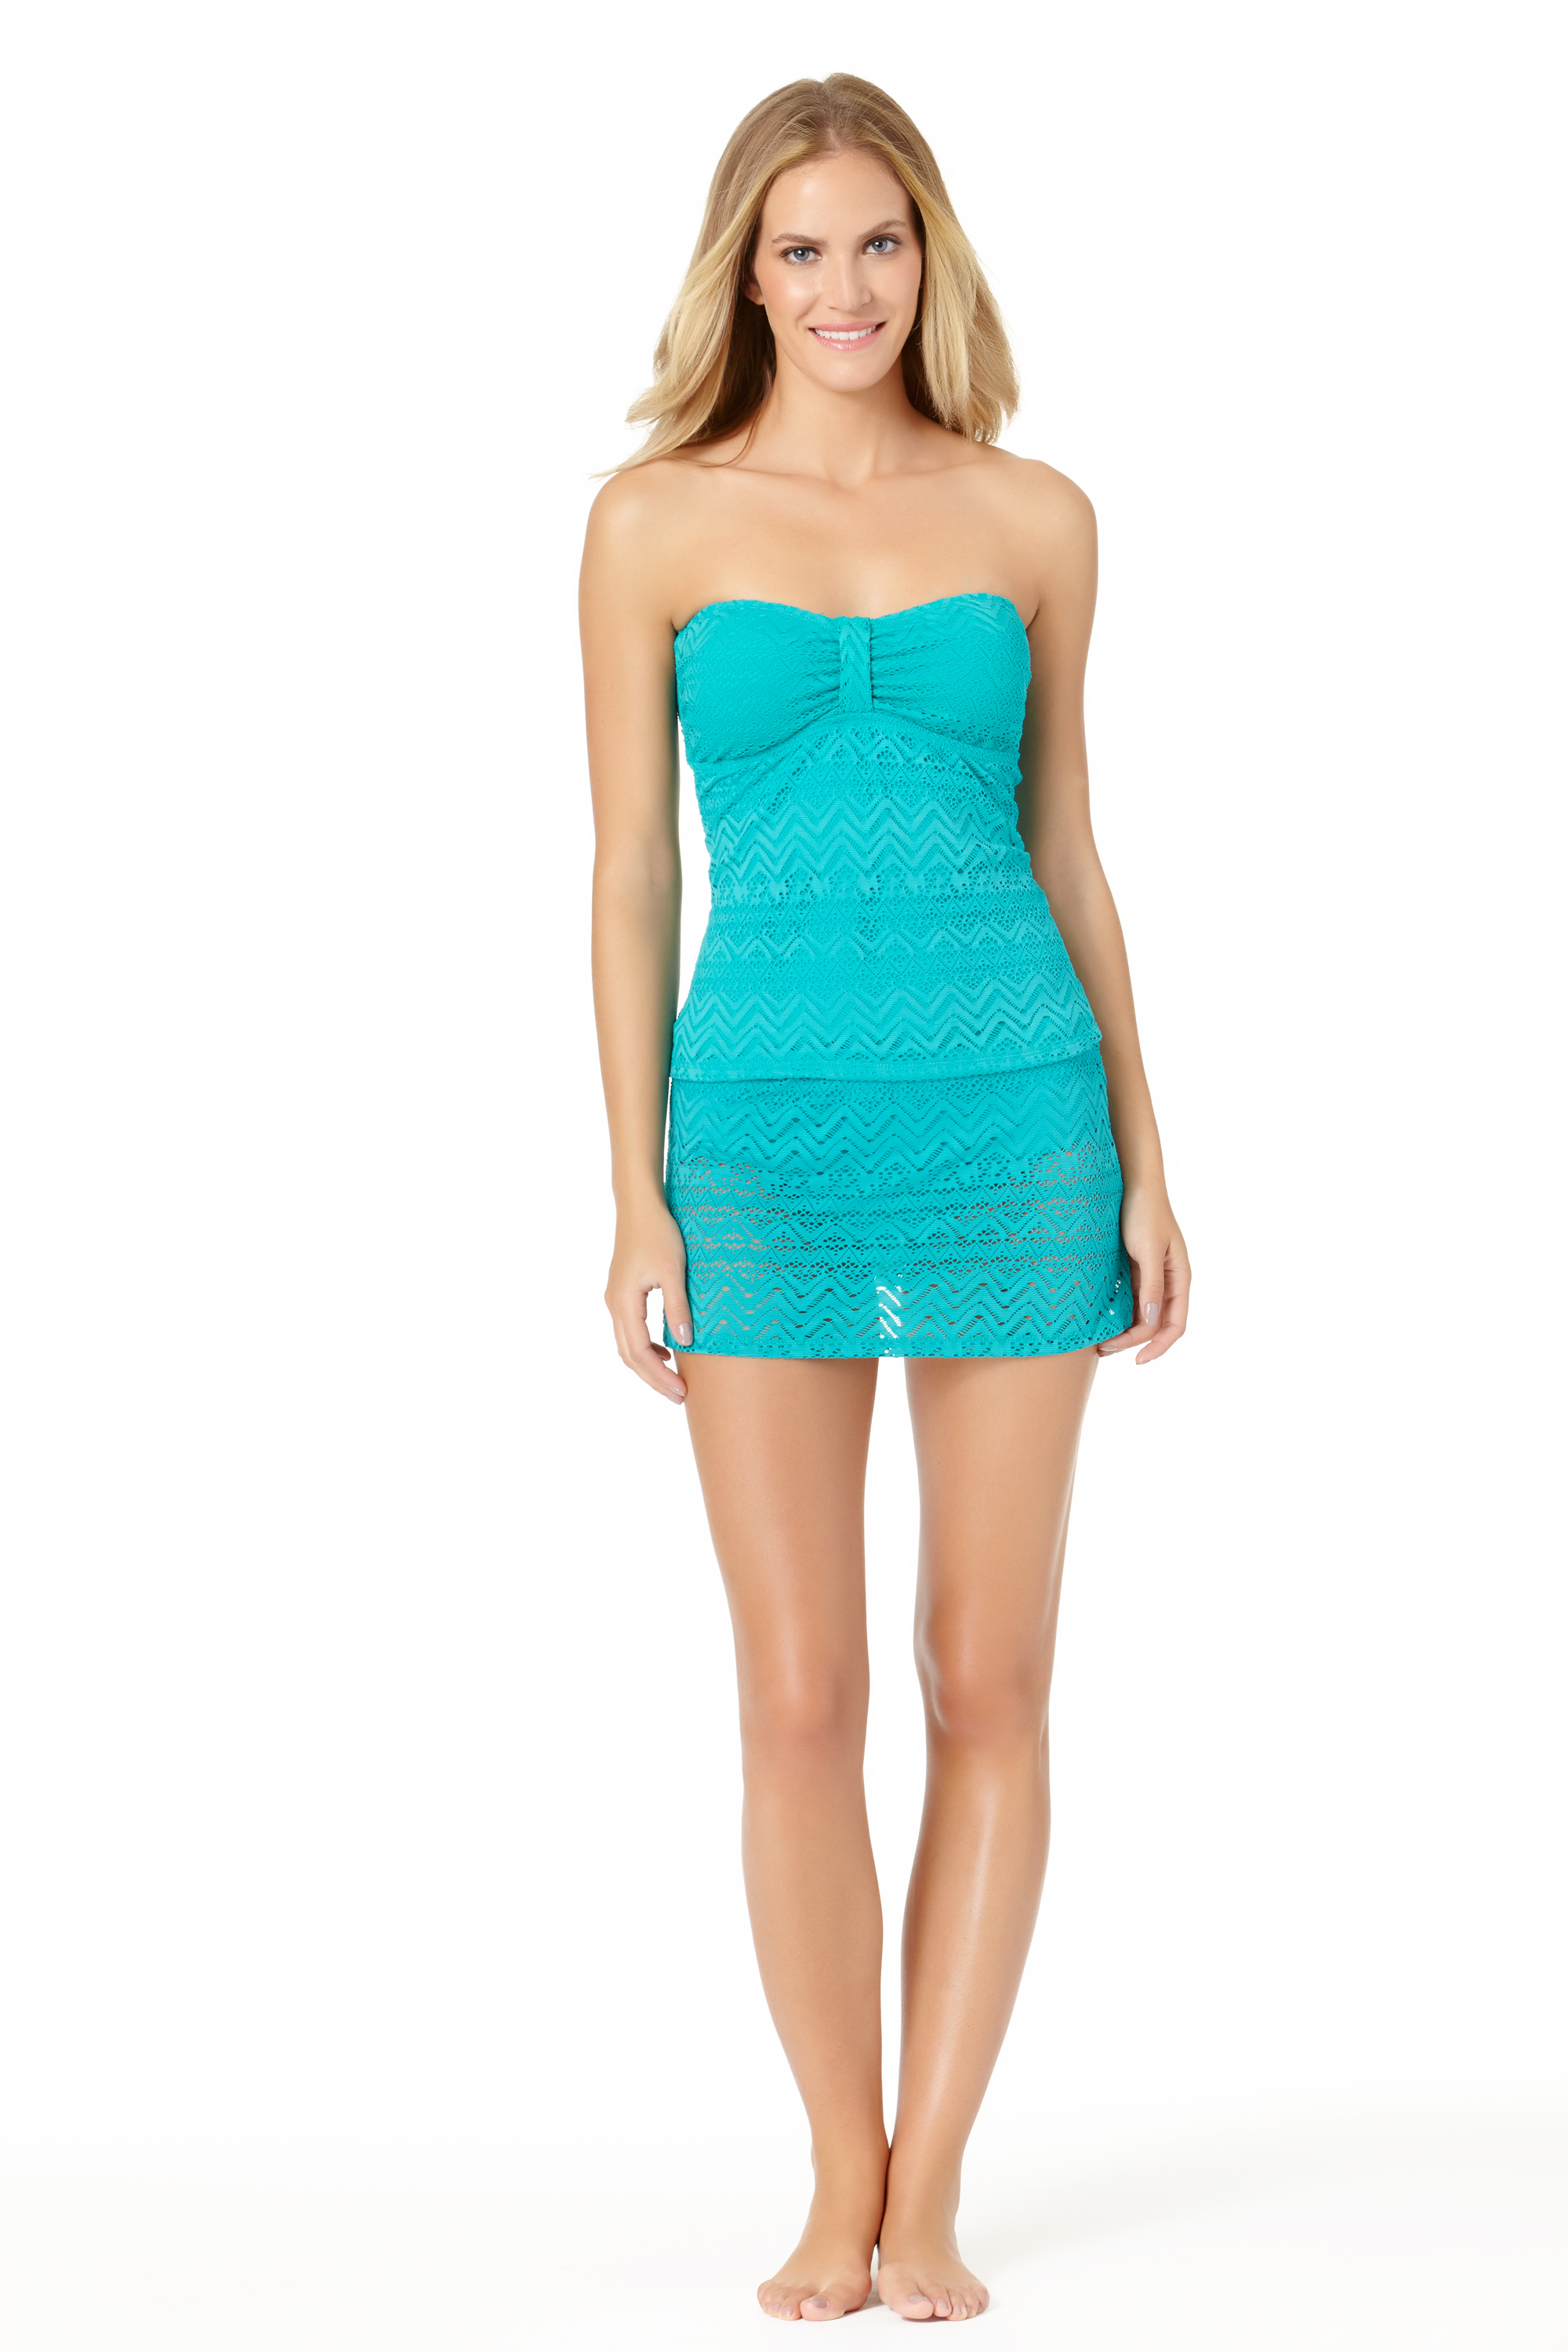 STYLE # CTL17411T / CTL17703B - Crochet Bandini TopSOLD OUTCrochet Skirted BottomSOLD OUT